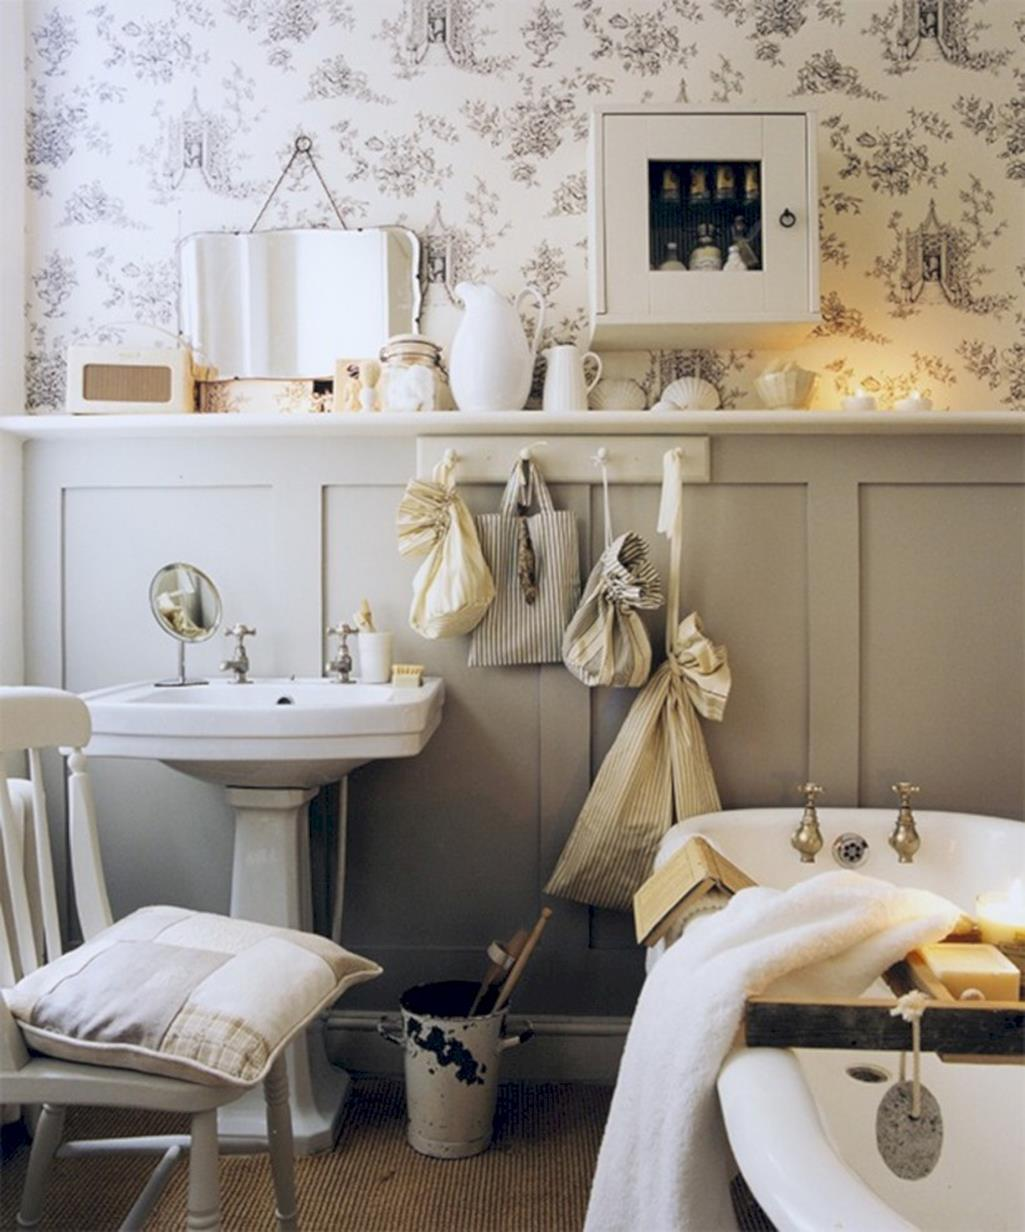 42 Perfect Small Bathroom Decorating Ideas 34